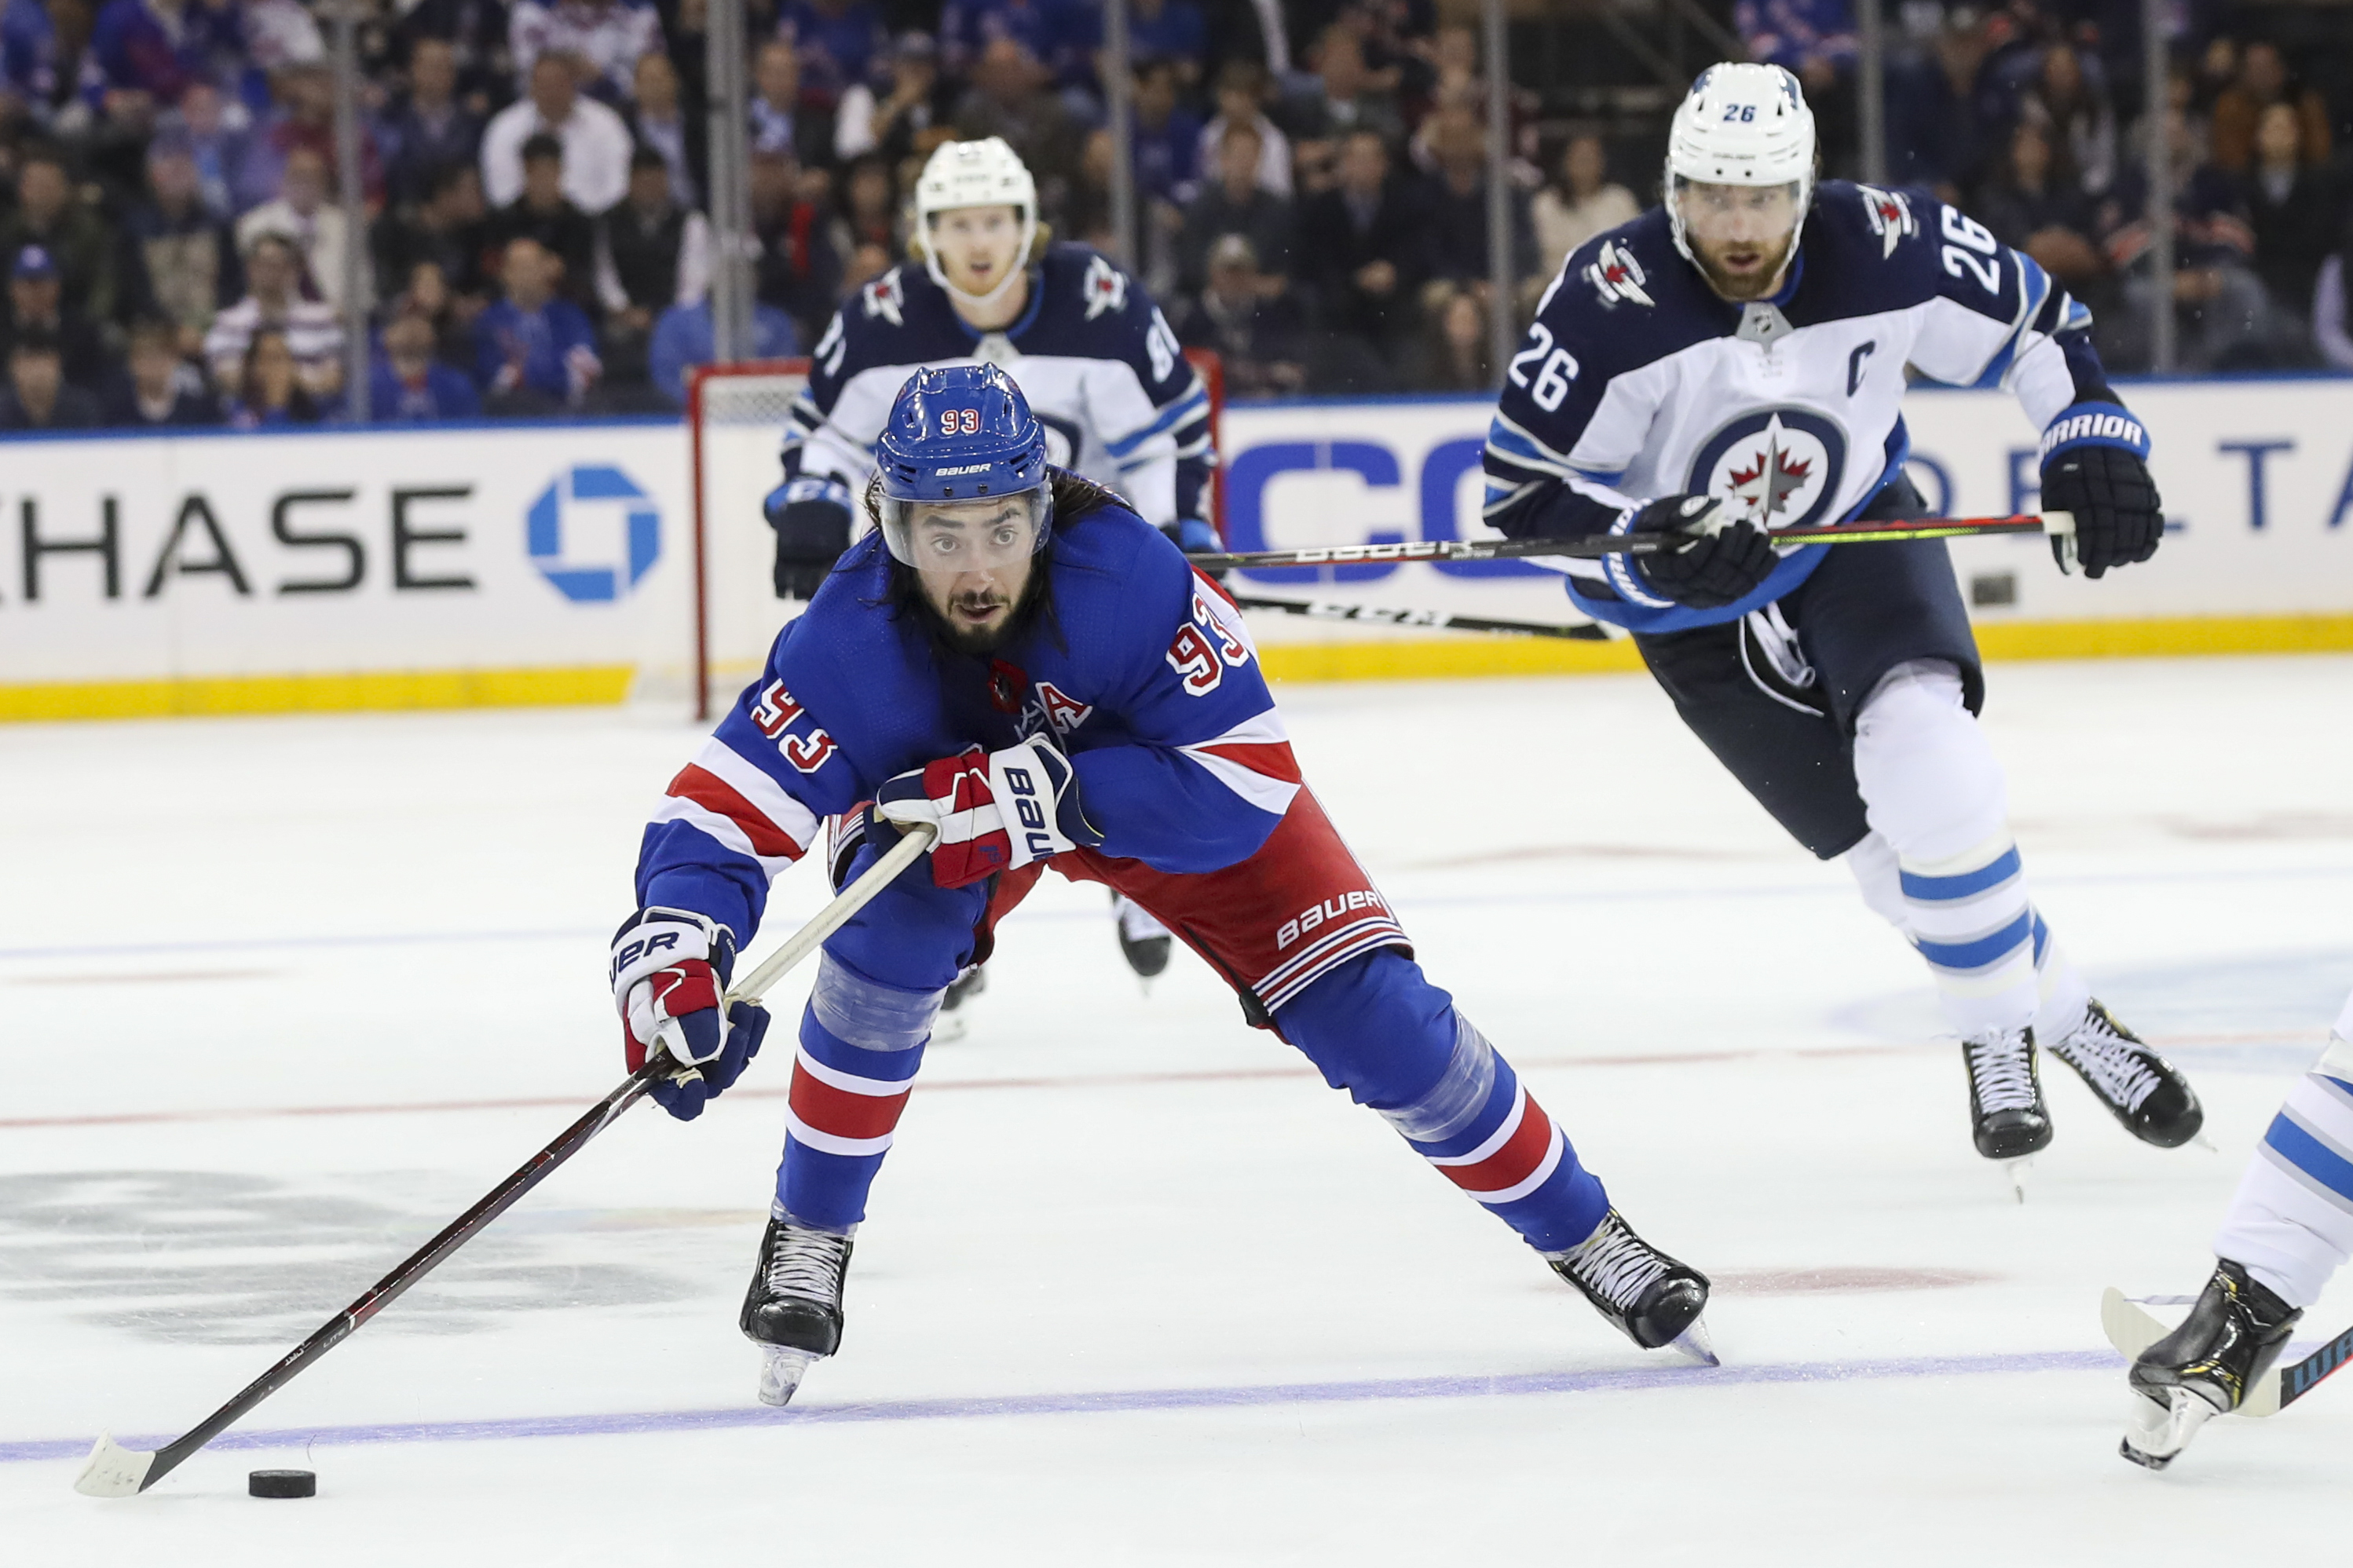 Howden scores late as Rangers beat Jets 6-4 in wild opener